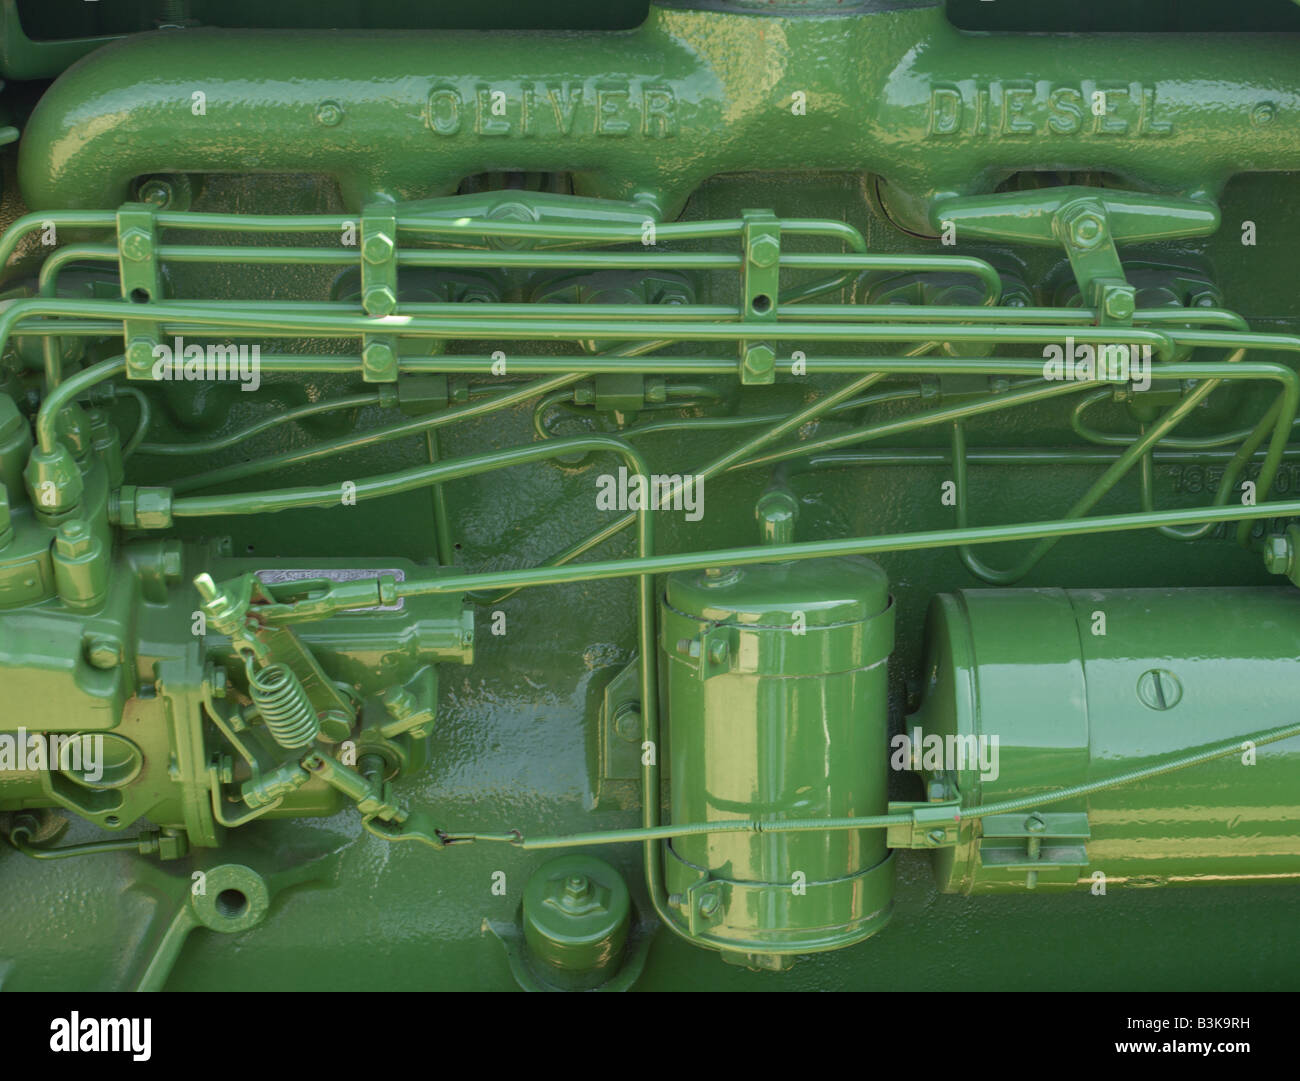 The manifold and exhaust of a 1955 Oliver Diesel tractor at a tractors show in Pennsylvania, USA. Stock Photo